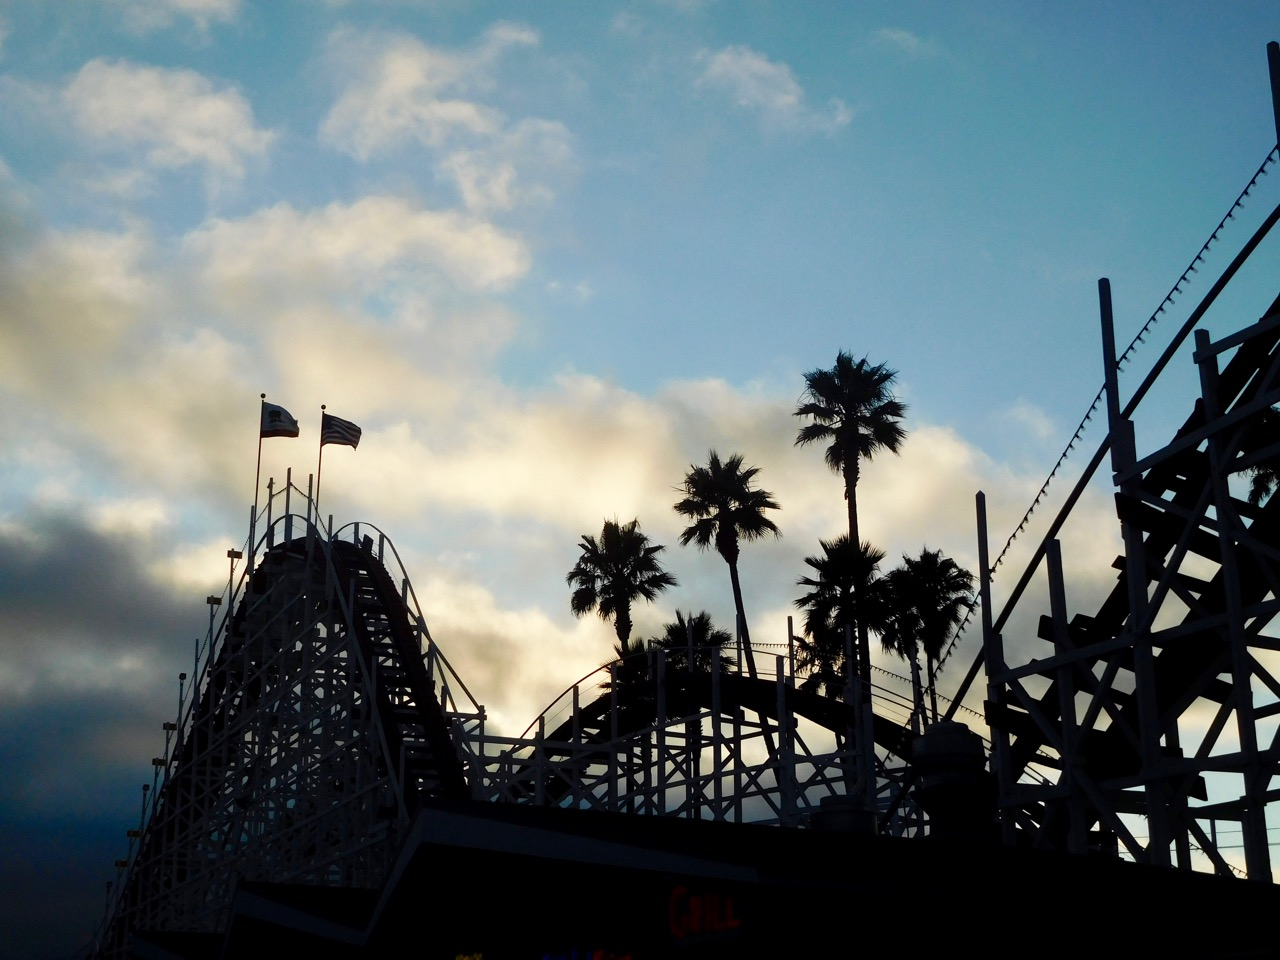 A few days in Santa Cruz - Rollercoasters at Boardwalk Amusement Park [01]